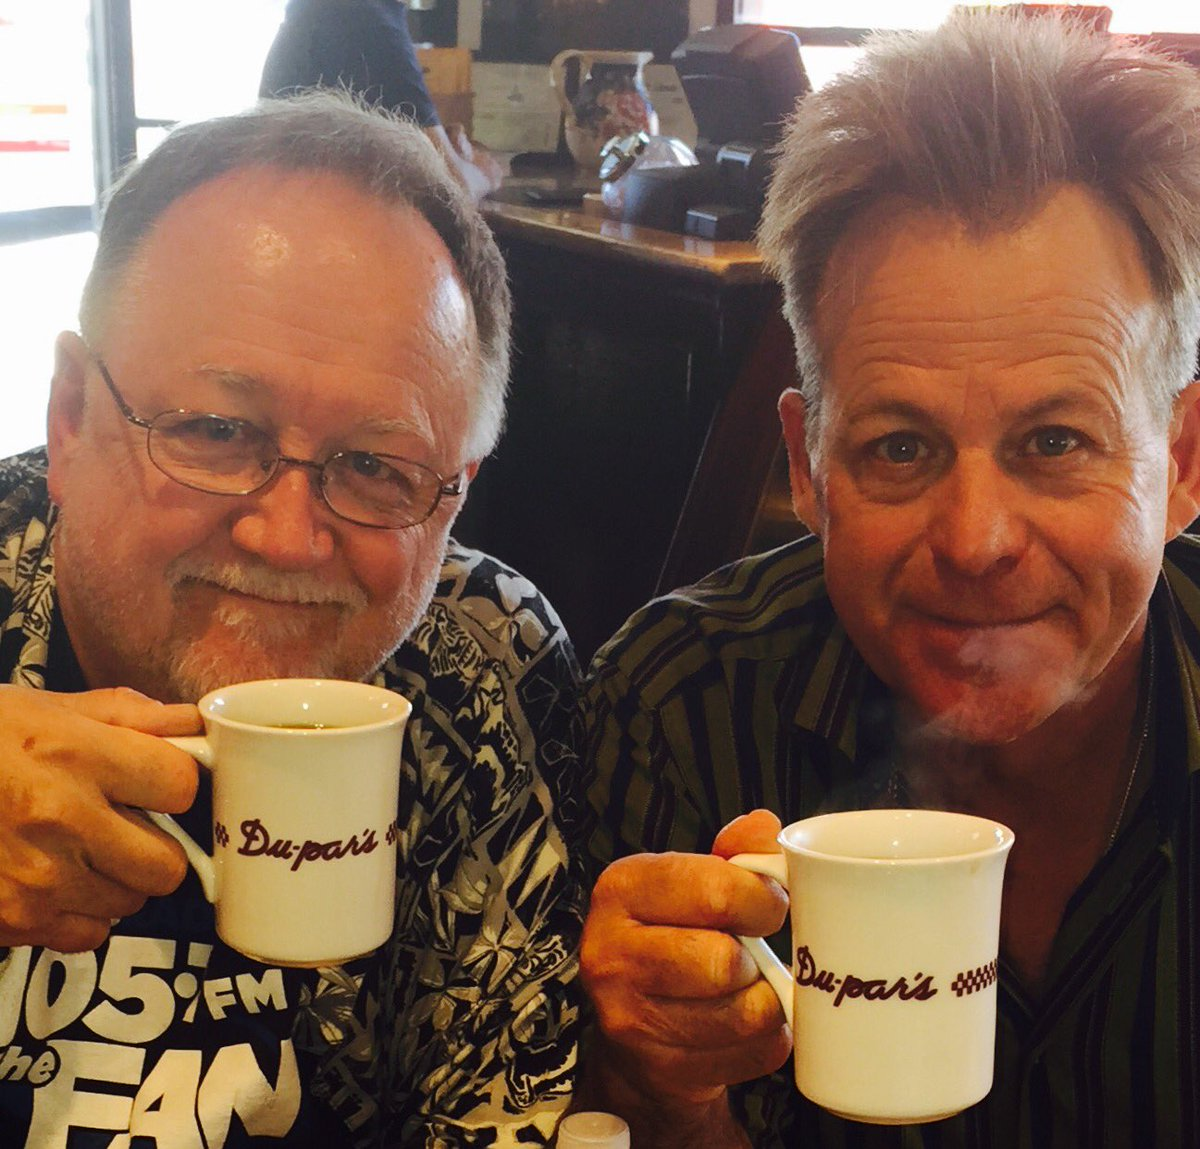 @kinshriner and me at #worldfamousdupars enjoying coffee as we have for FORTY years https://t.co/TD3KmuNgSu